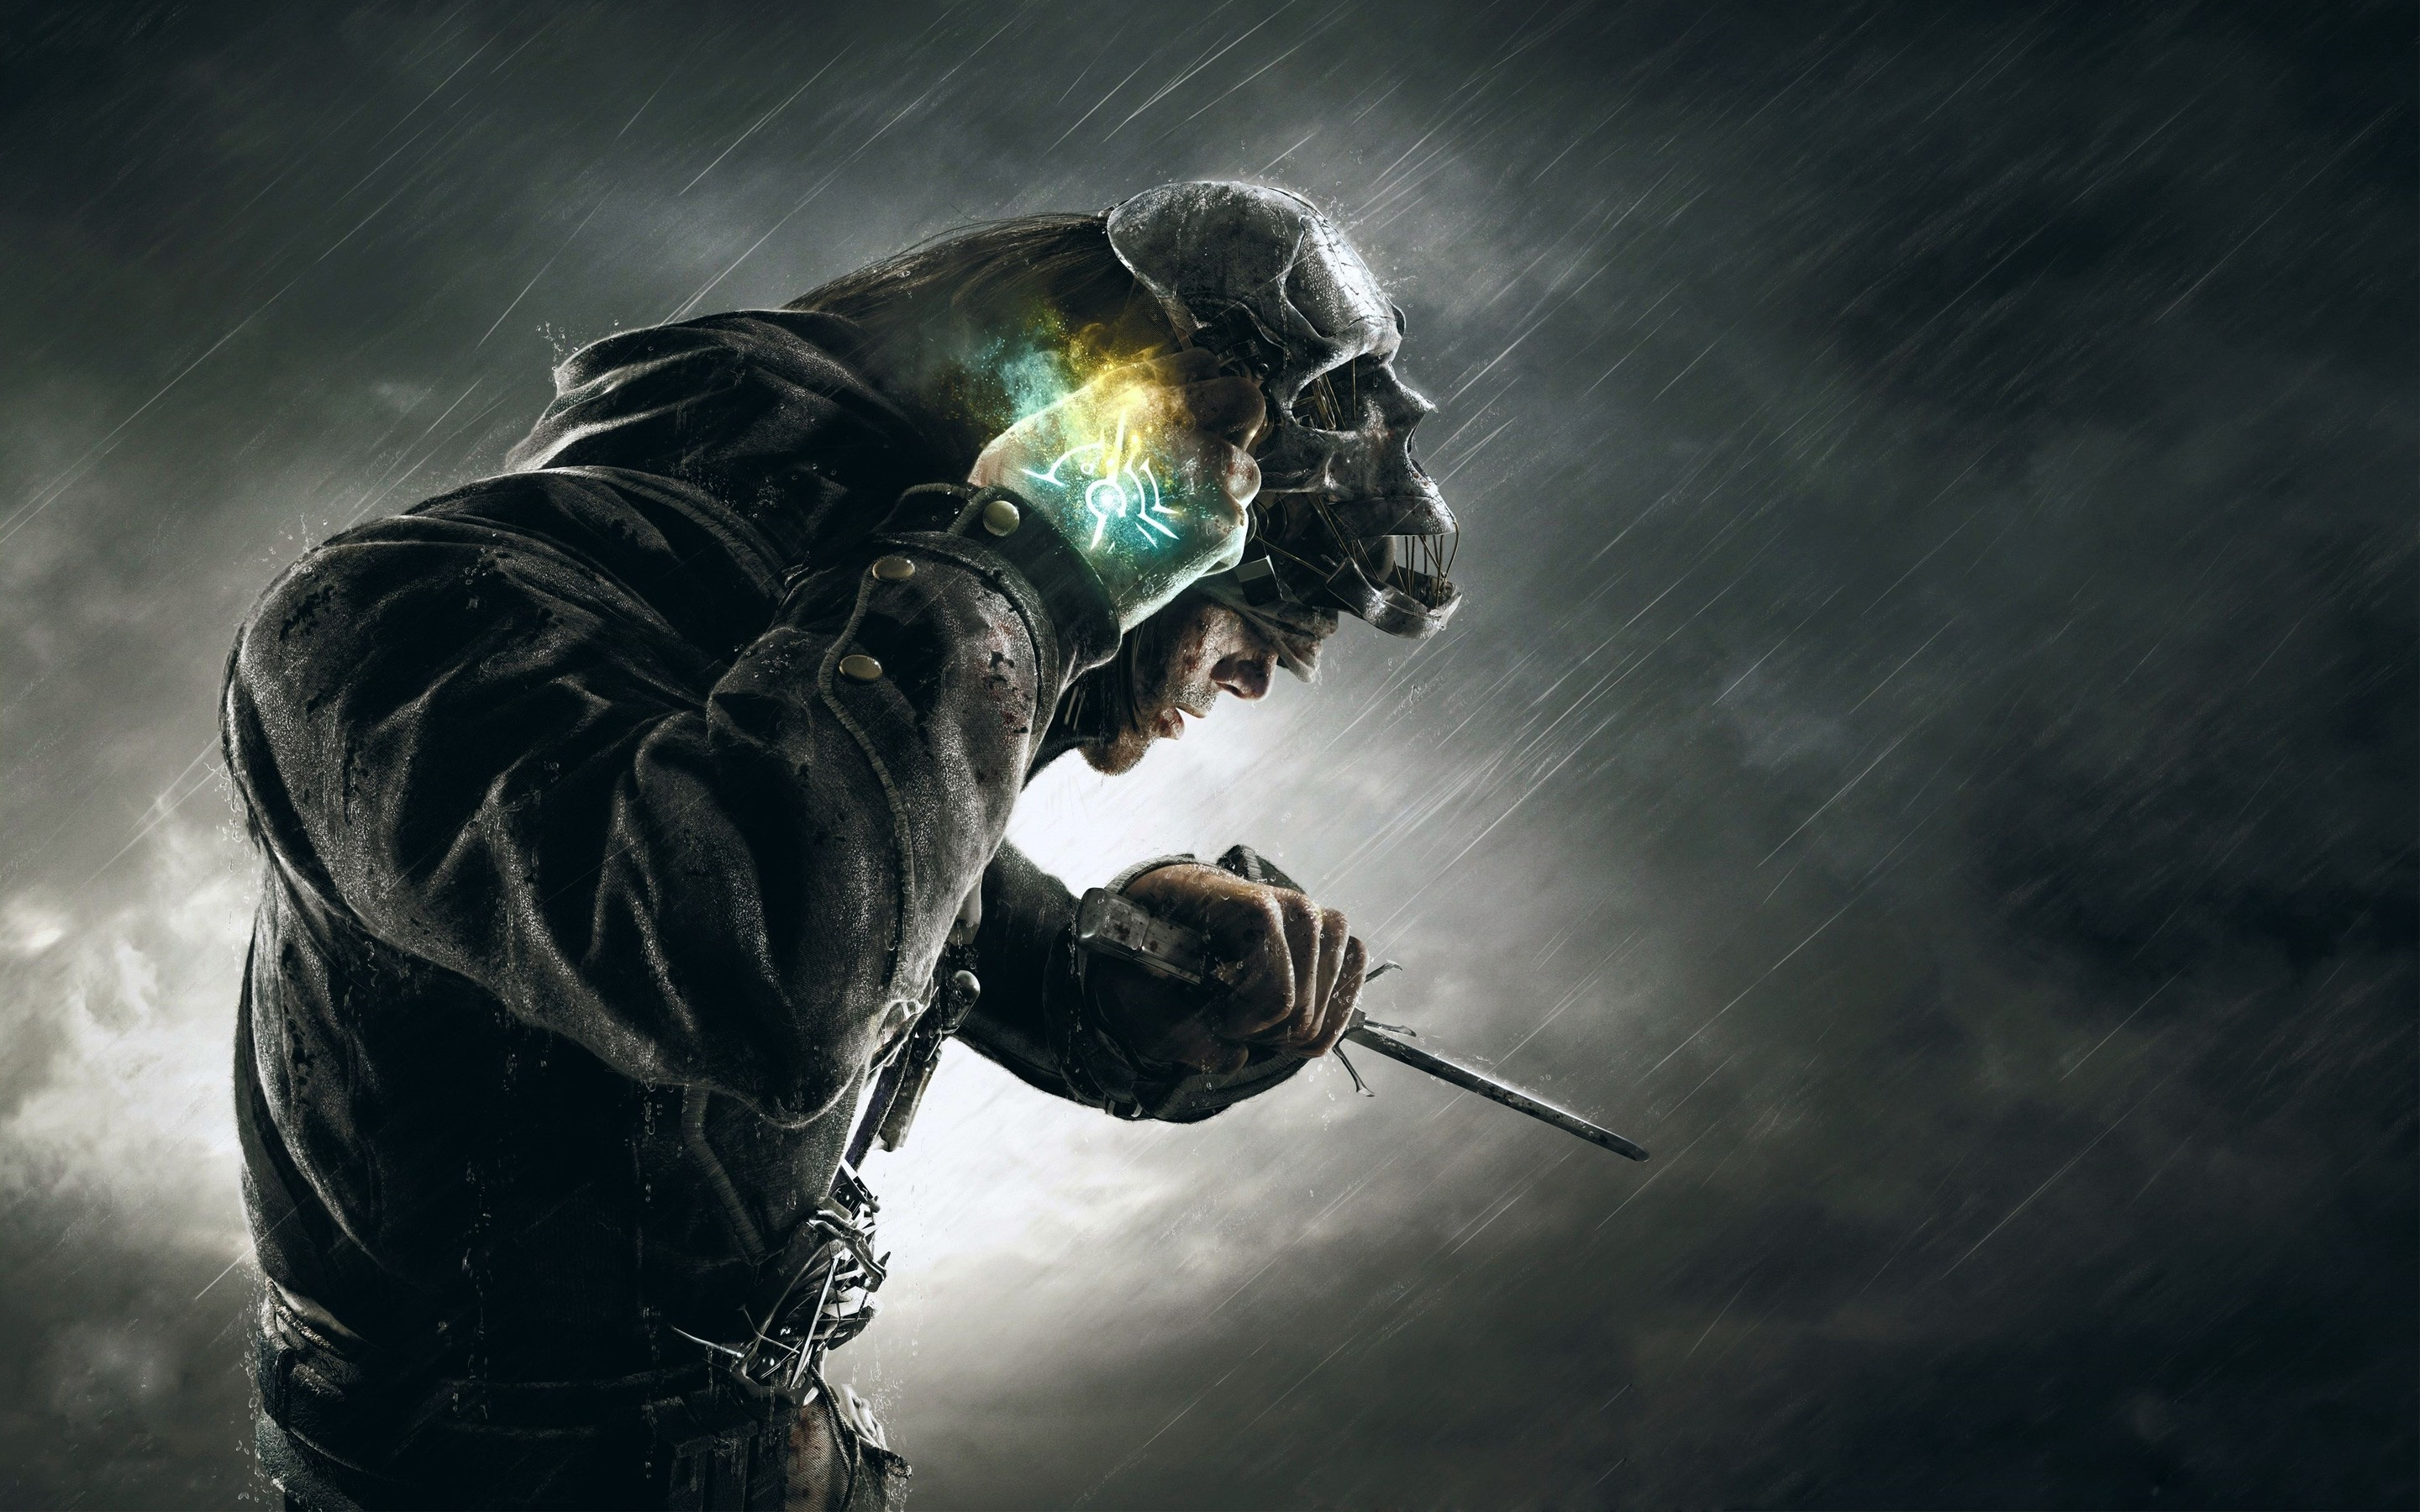 Dishonored Wallpaper 4k: 2048x1152 Dishonored Corvo Skull Mask 2048x1152 Resolution